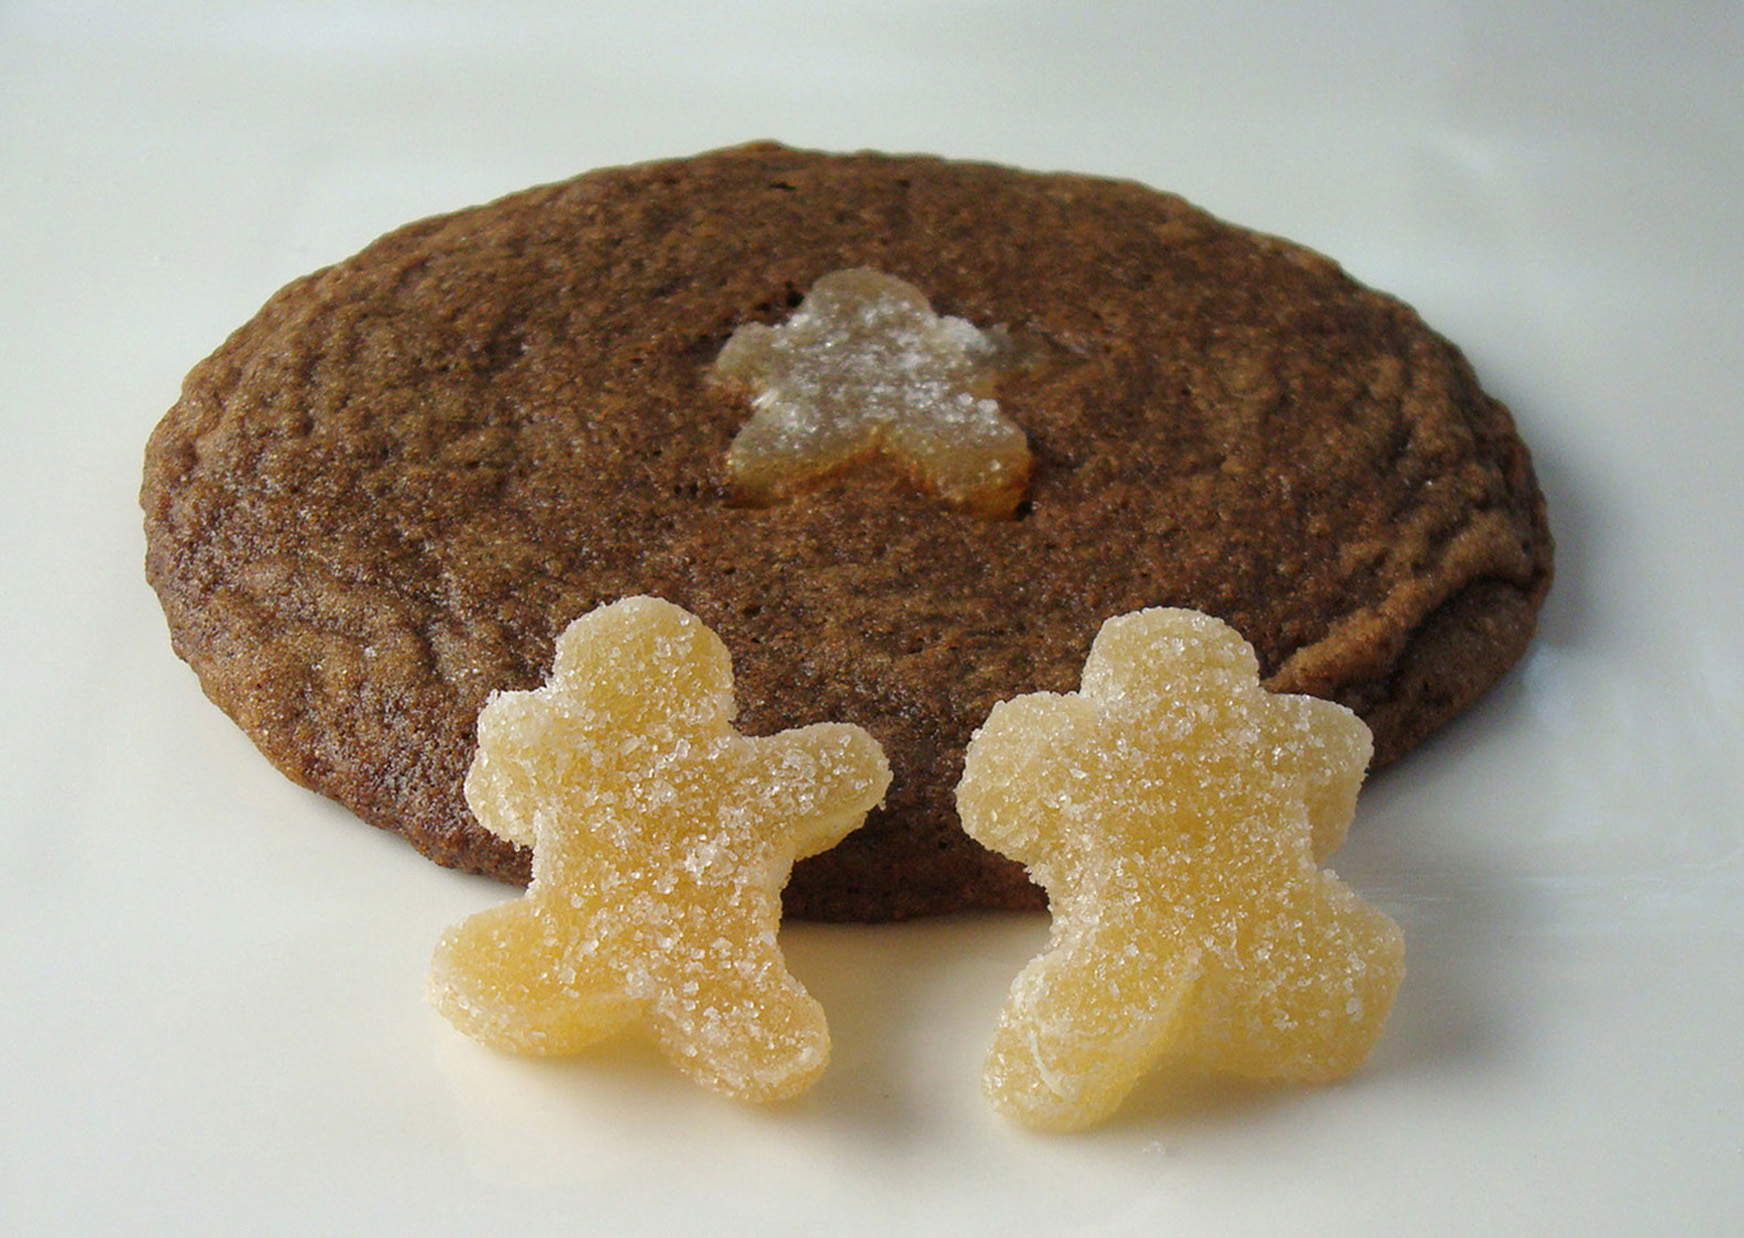 Ginger Babies play hide & seek in chewy molasses cookies. Recipe follows.